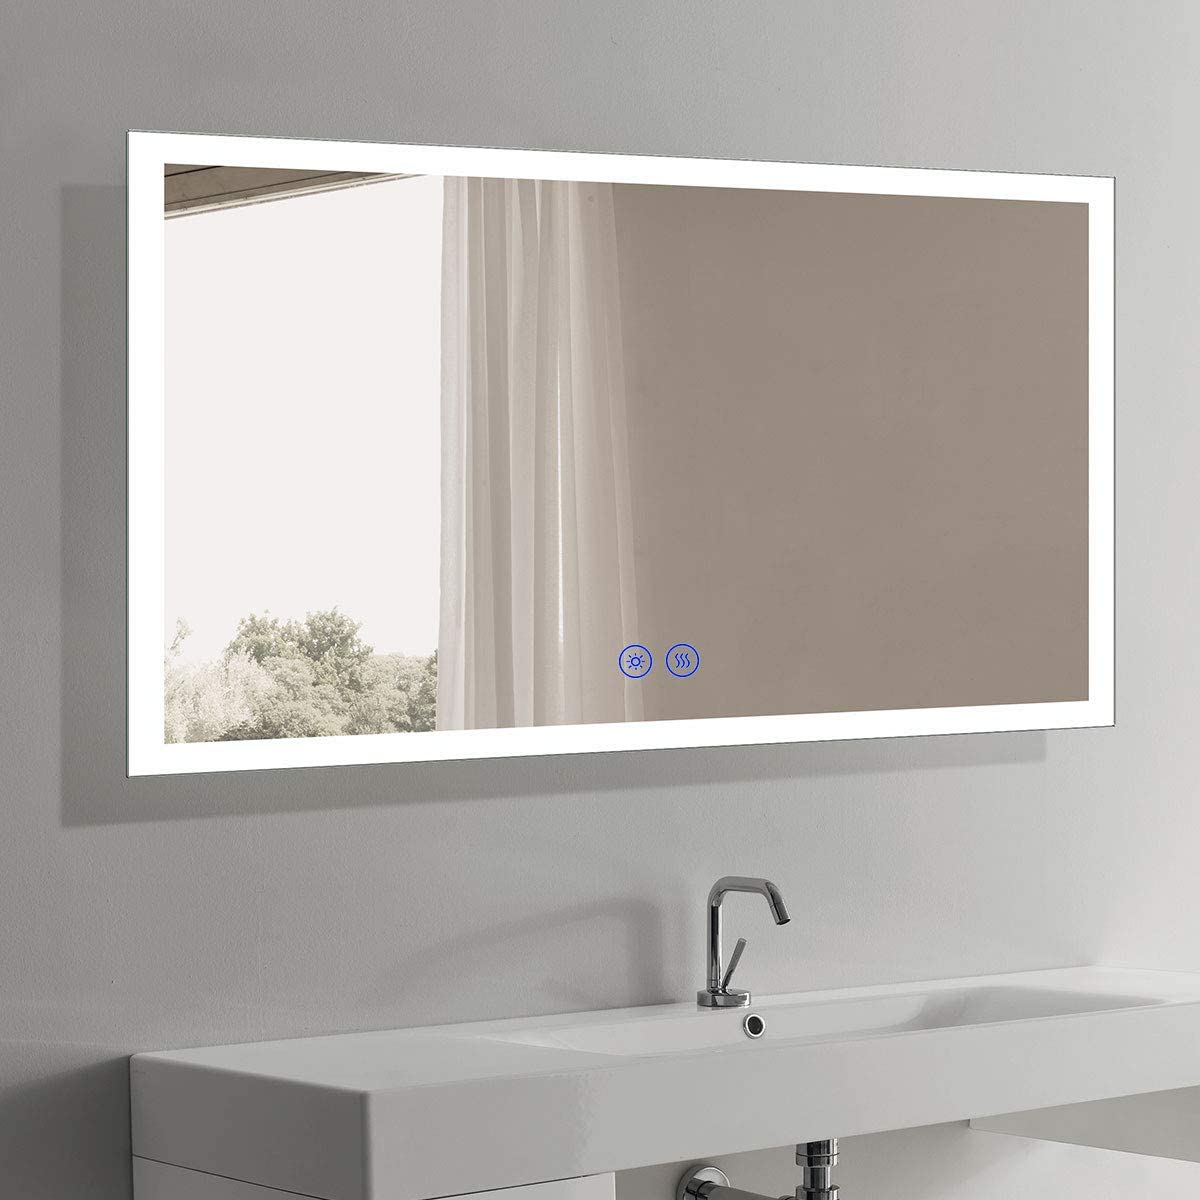 Amazon Com Dimmable Led Bathroom Mirror With Anti Fog Function Wall Mounted Vanity Large Mirror With Touch Button Vertical Horizontal 60x36 In Iluminated Mirror Ip 44 6000k White Lights Ul Nt03 6036 Home